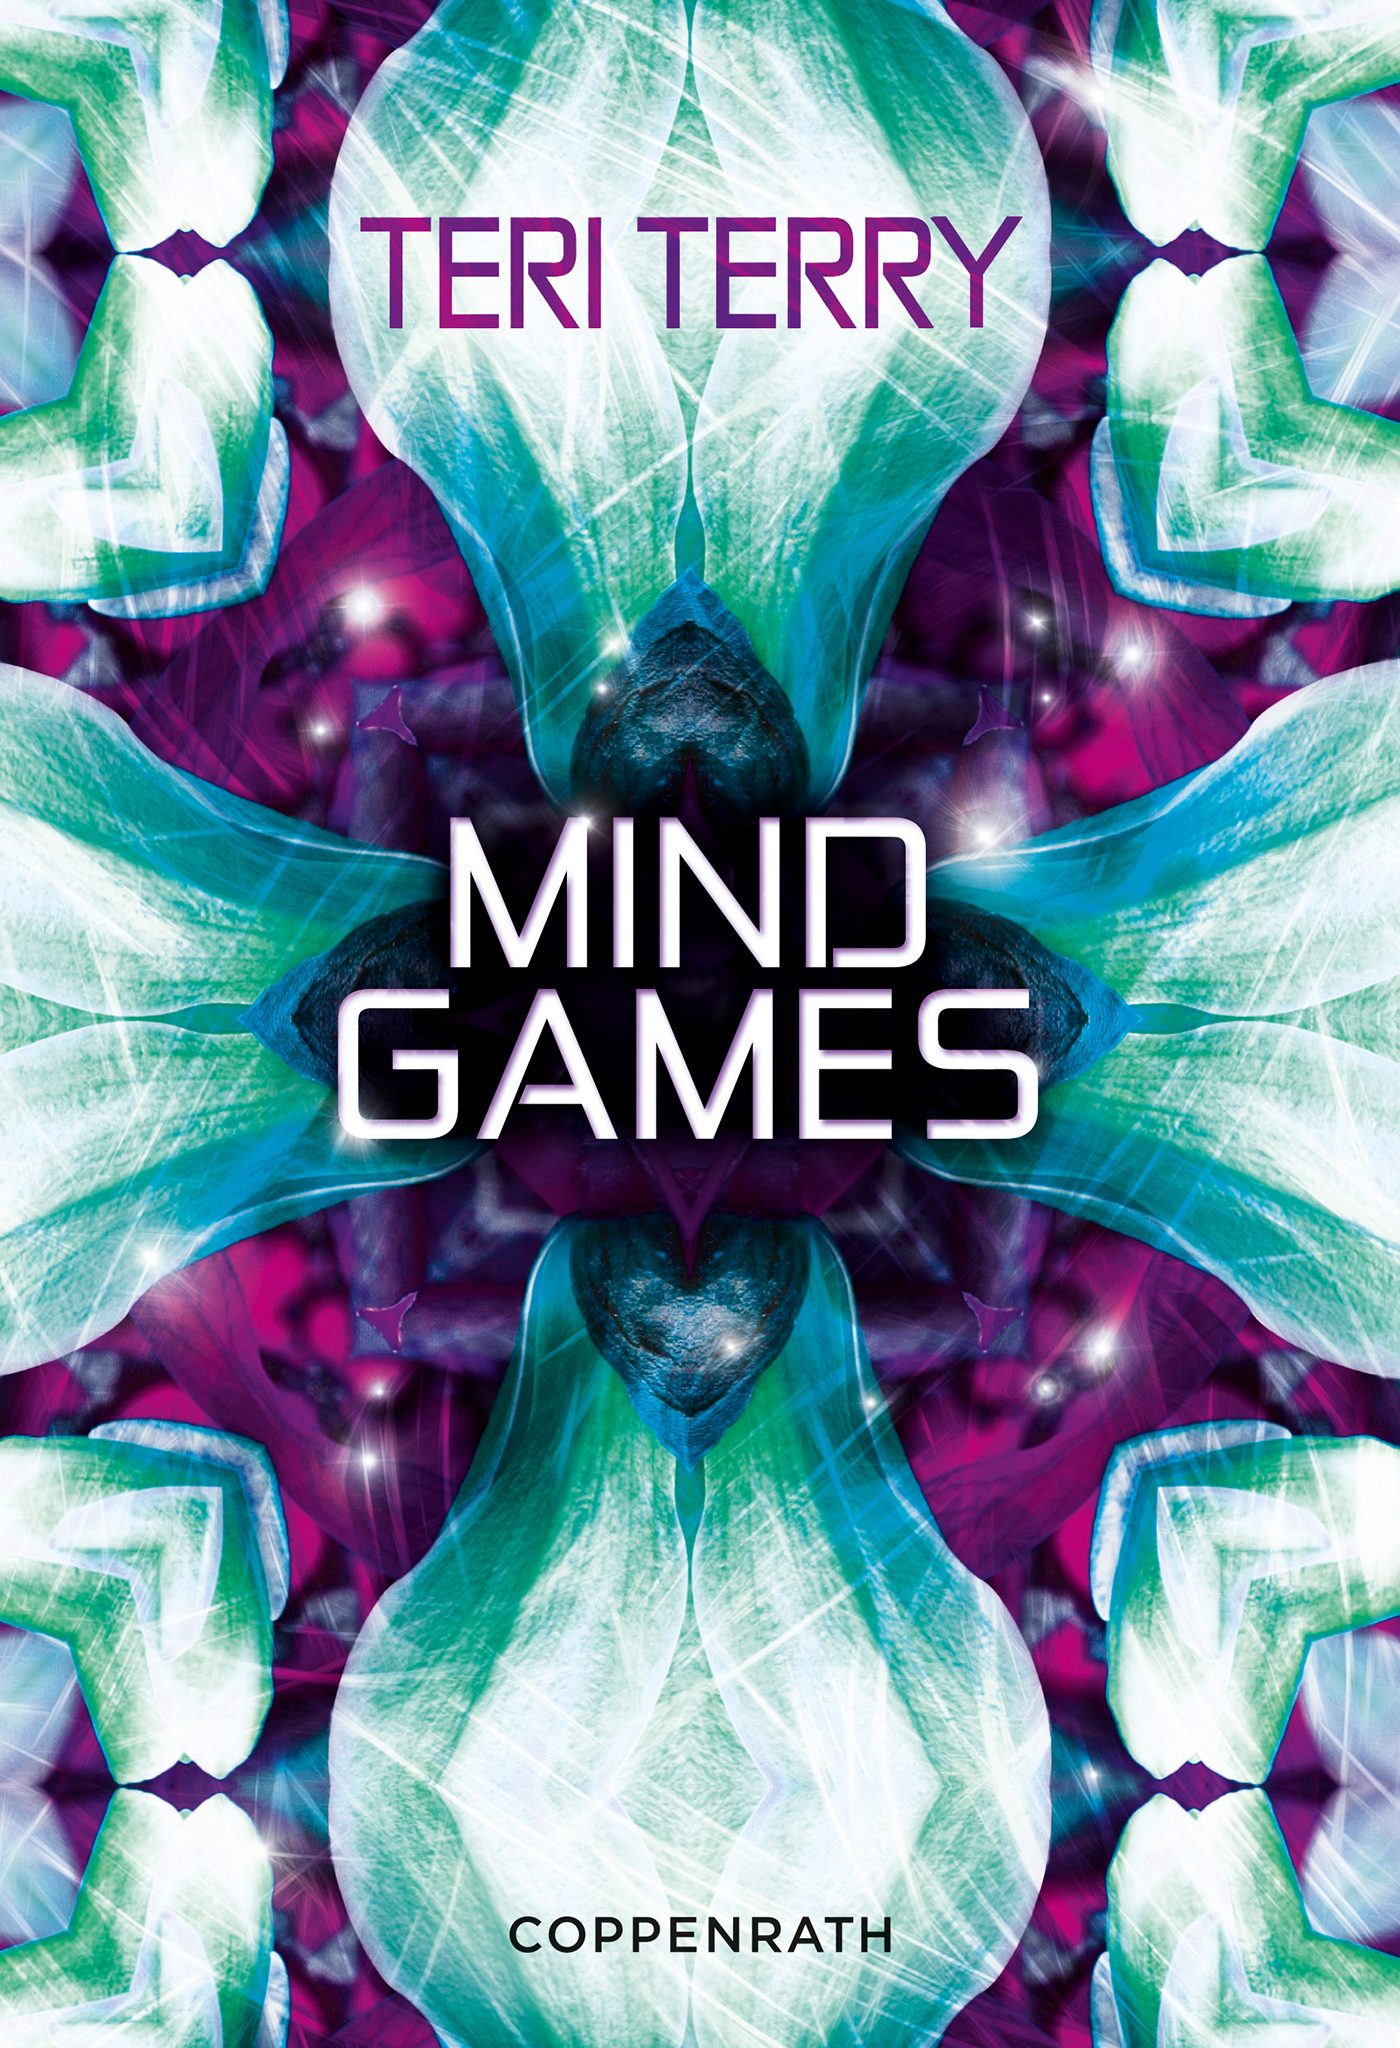 купить Teri Terry Mind Games в интернет-магазине